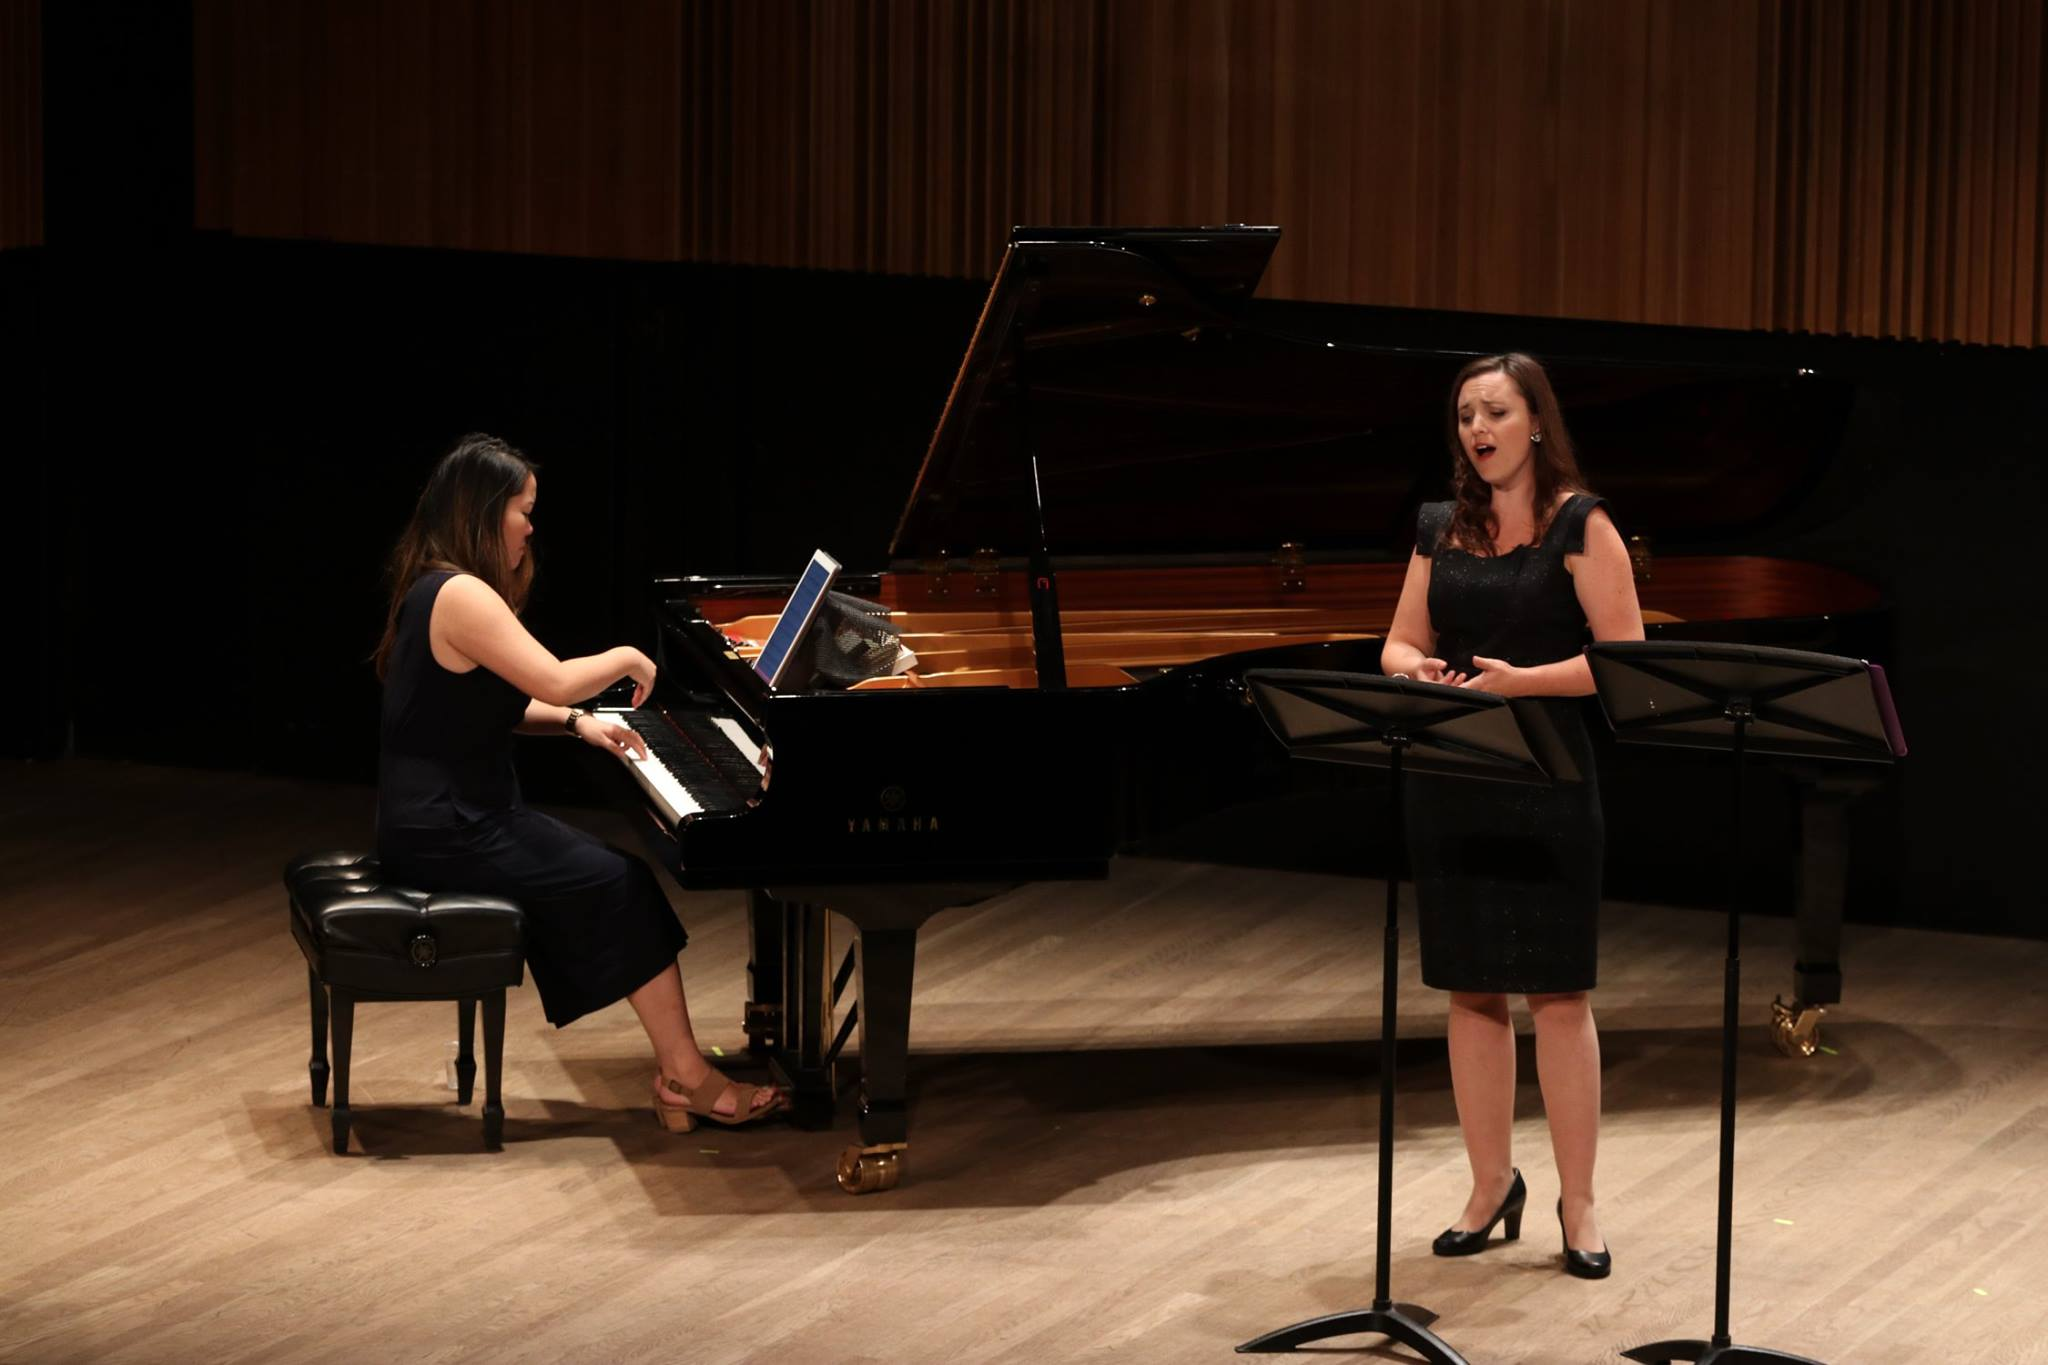 Musique 3 Femmes - Classical Music - Opera - Equal Opportunity